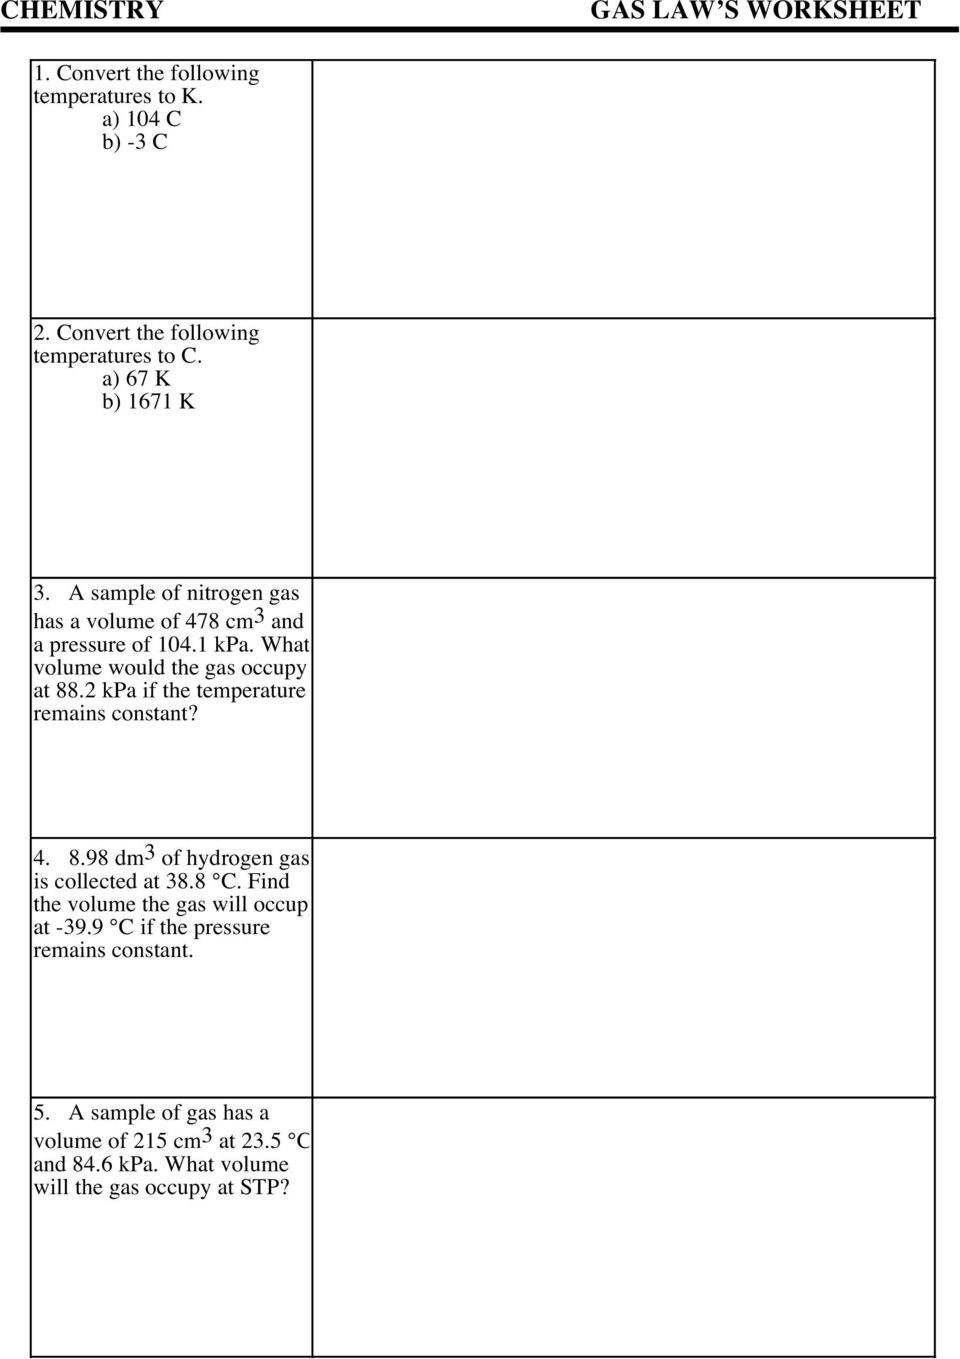 Charles Law Worksheet Answers